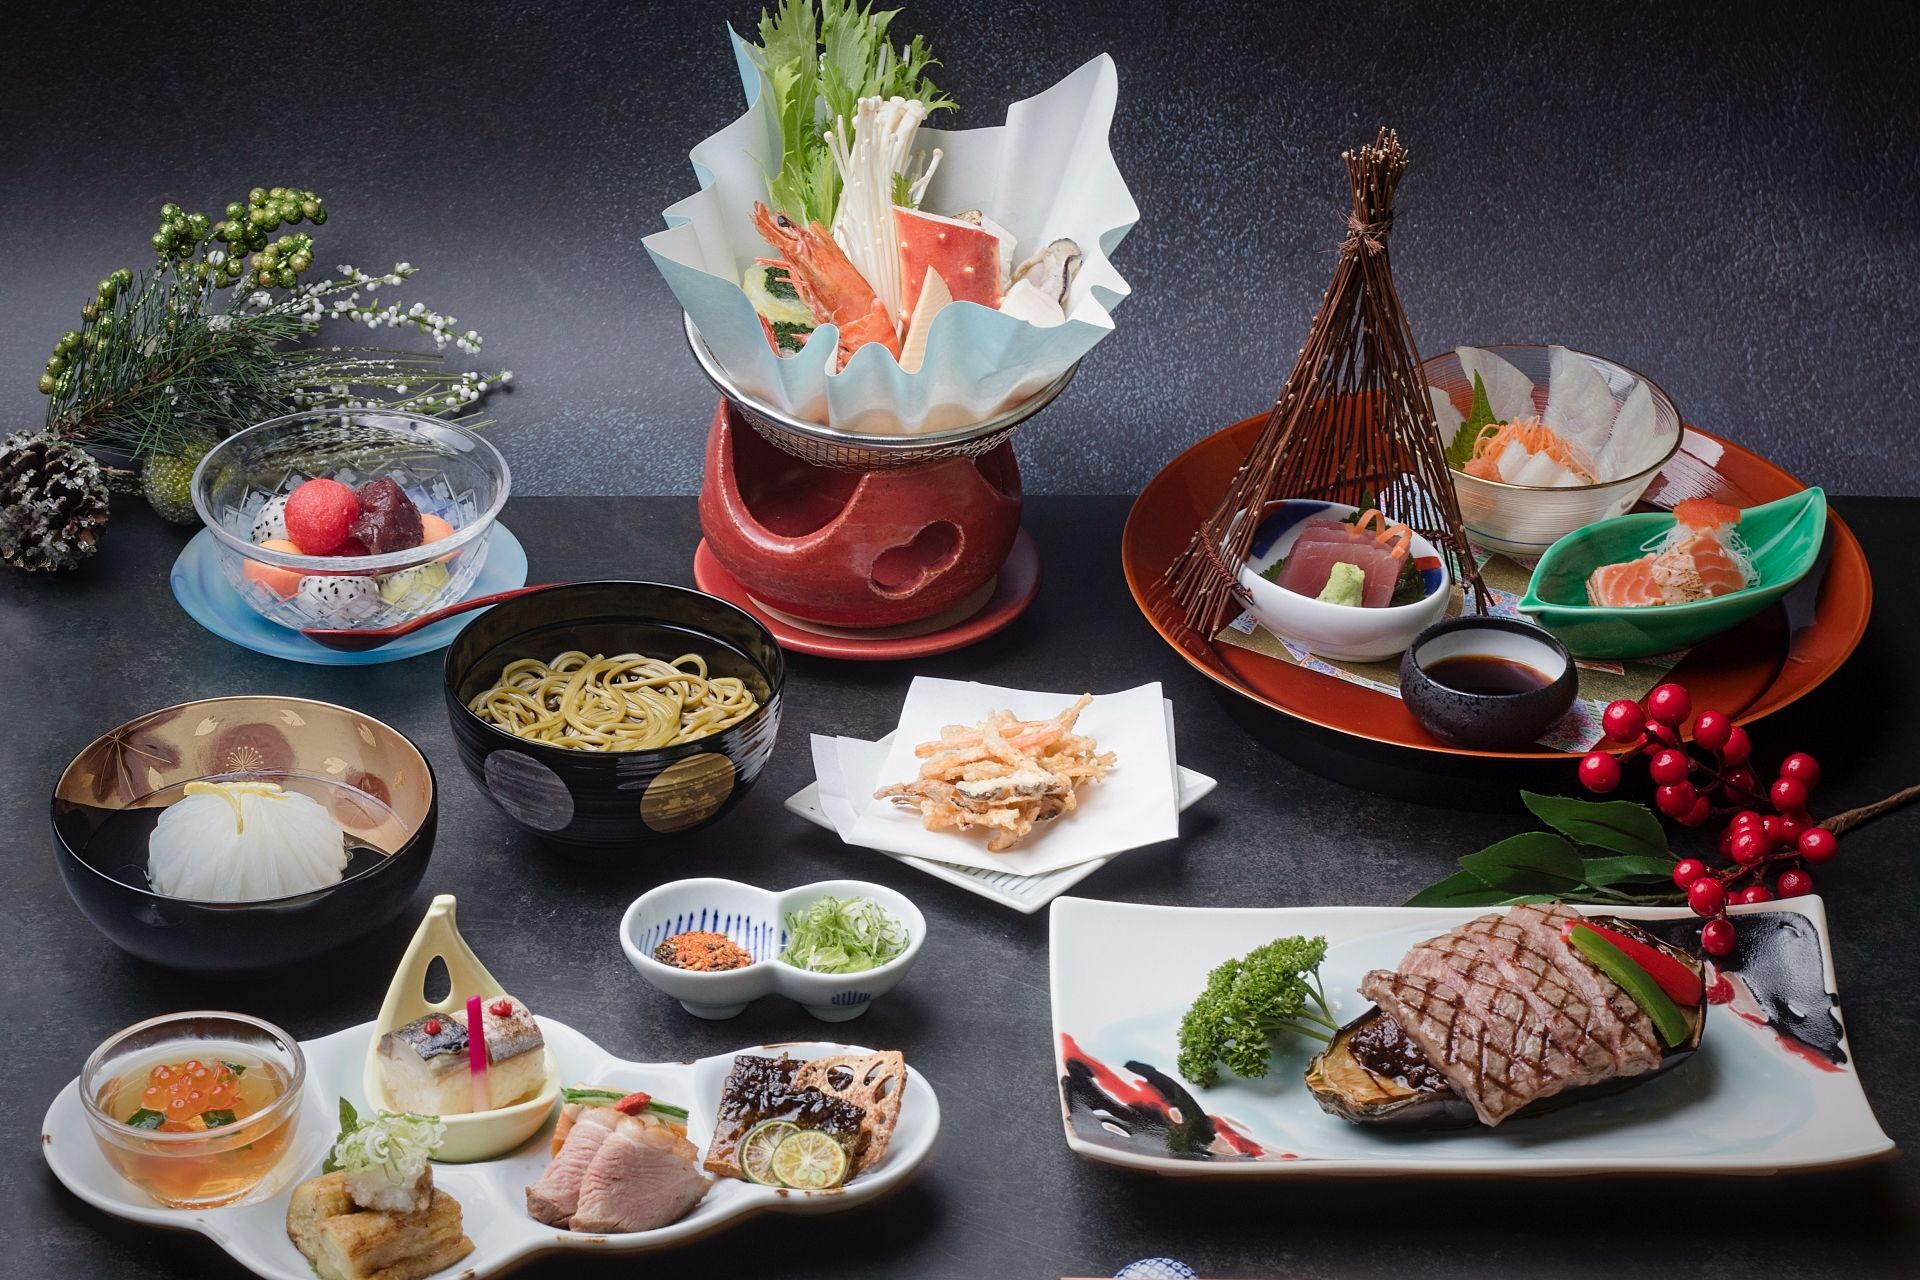 Yamazato's Traditional Japanese Food Is Made With Filipinos In Mind